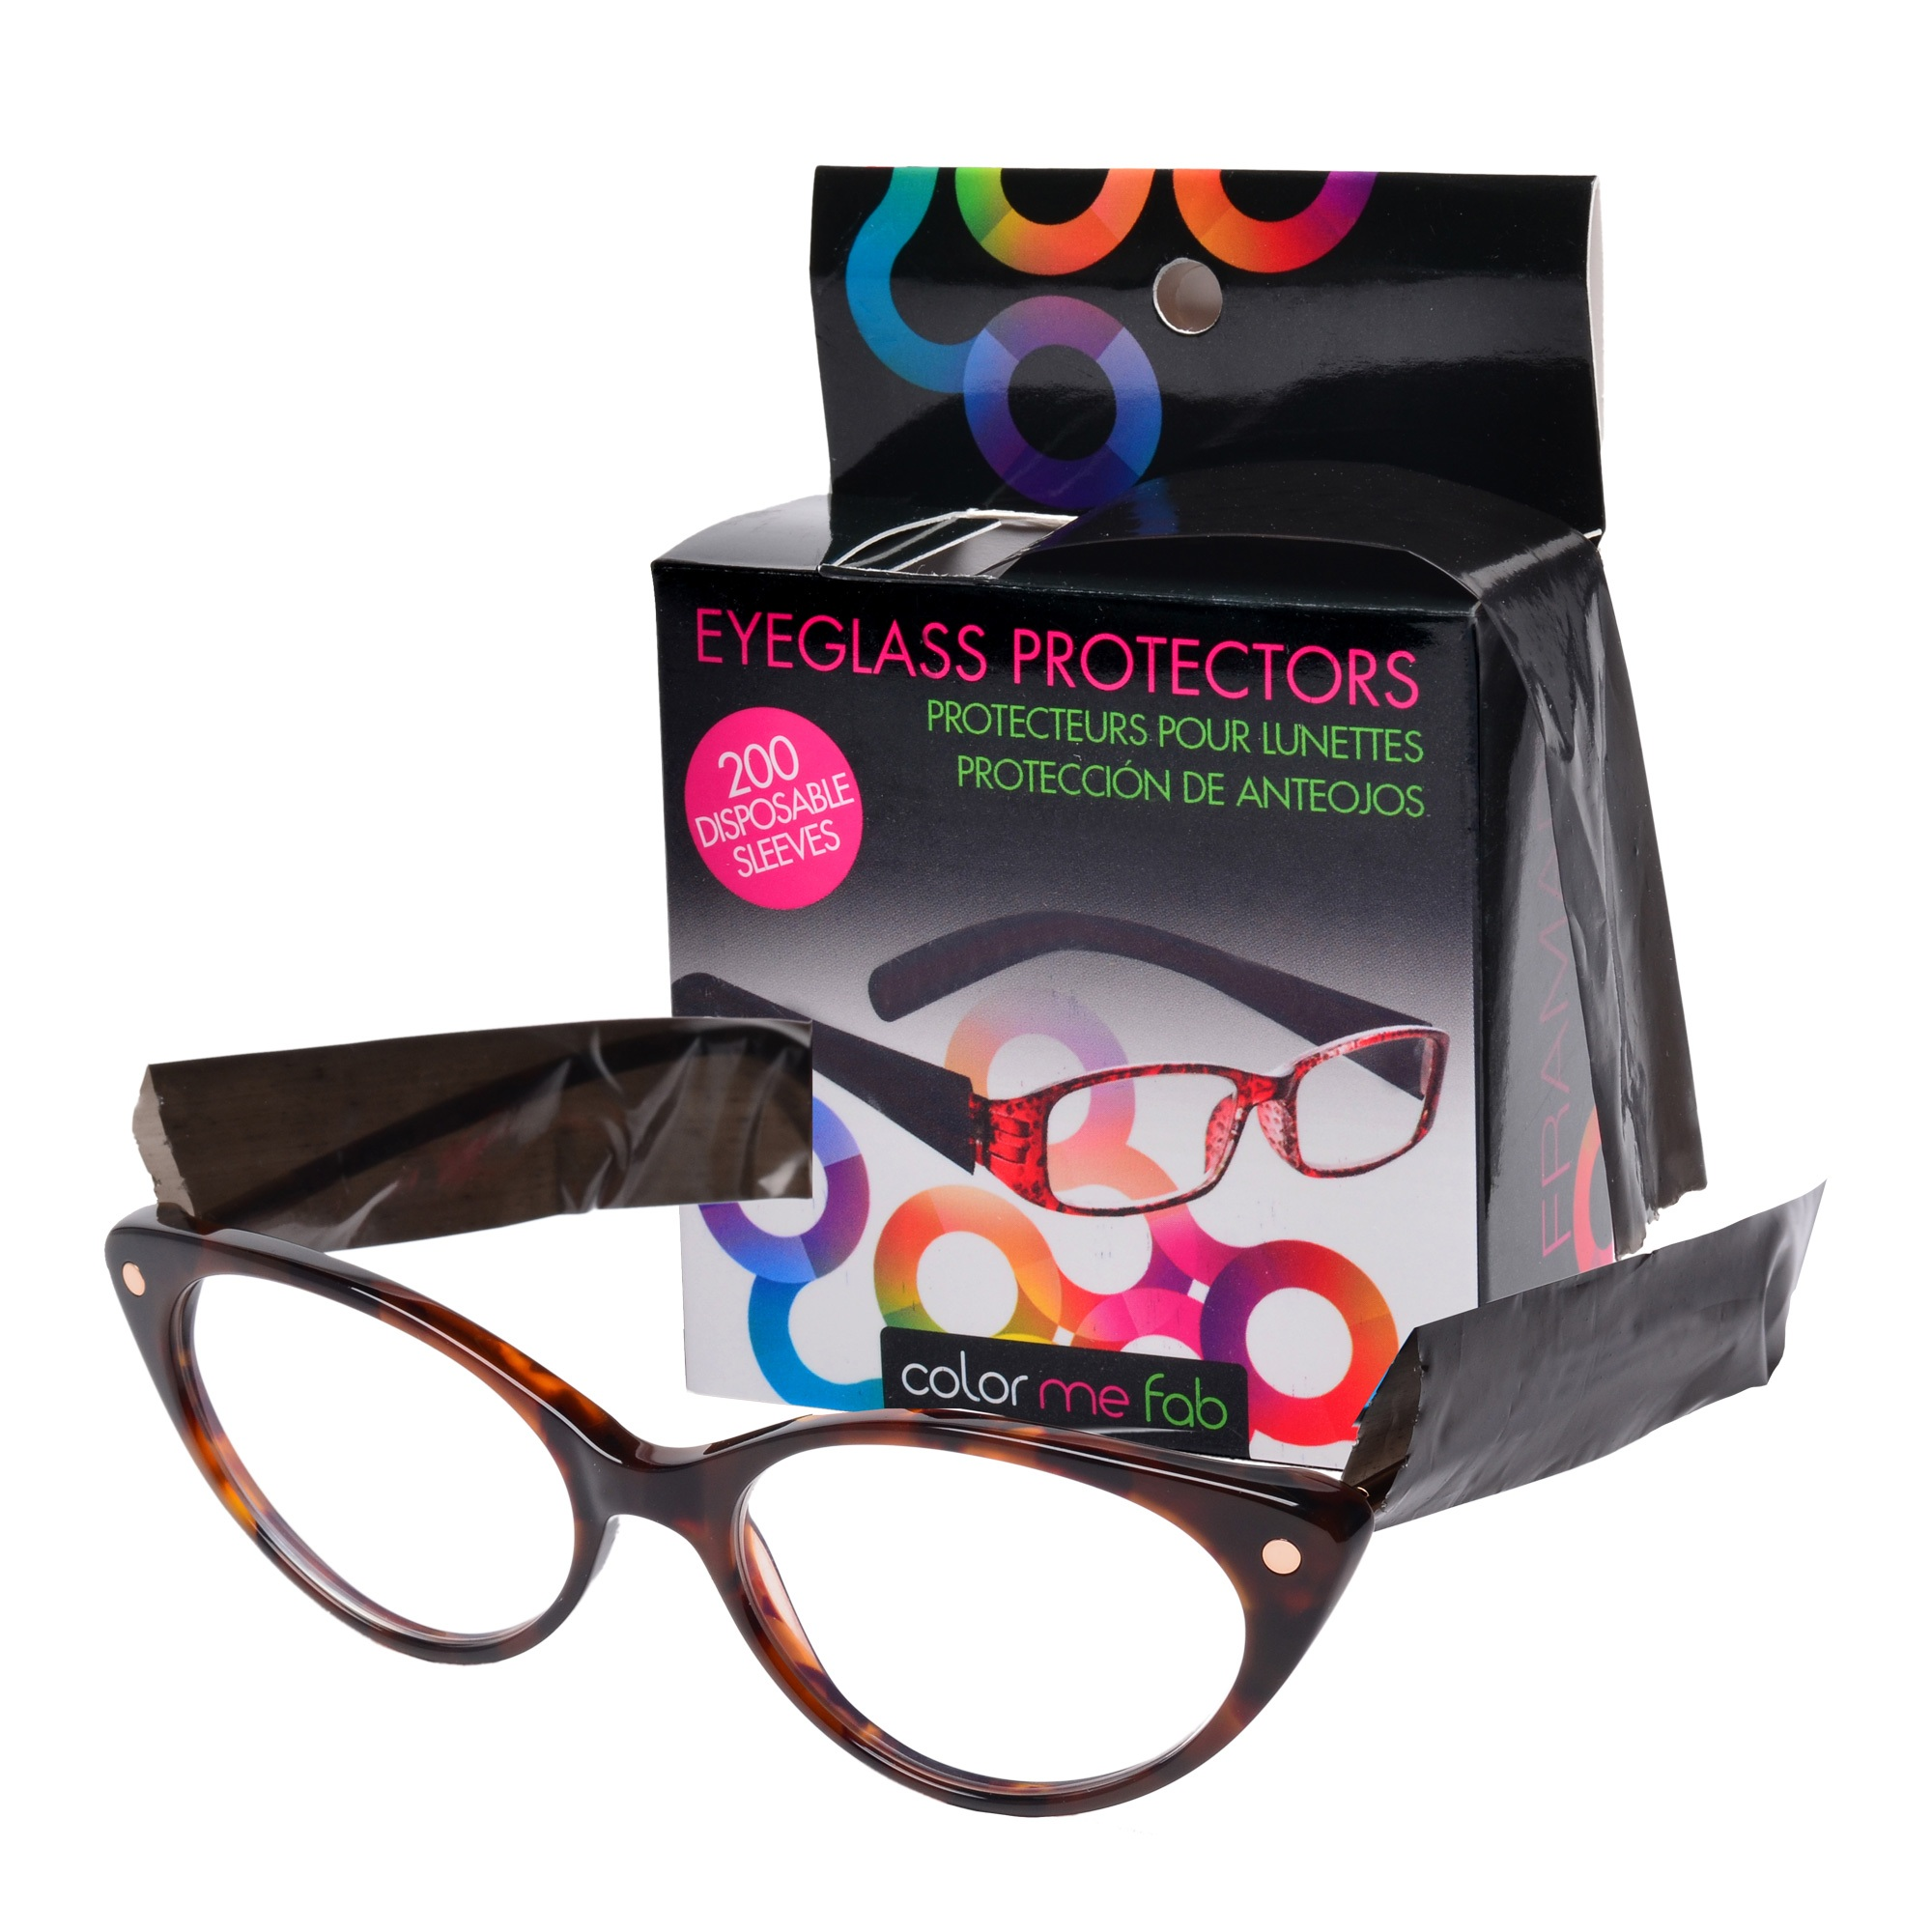 Framar TOYS: Eye Glass Protectors 200 pc